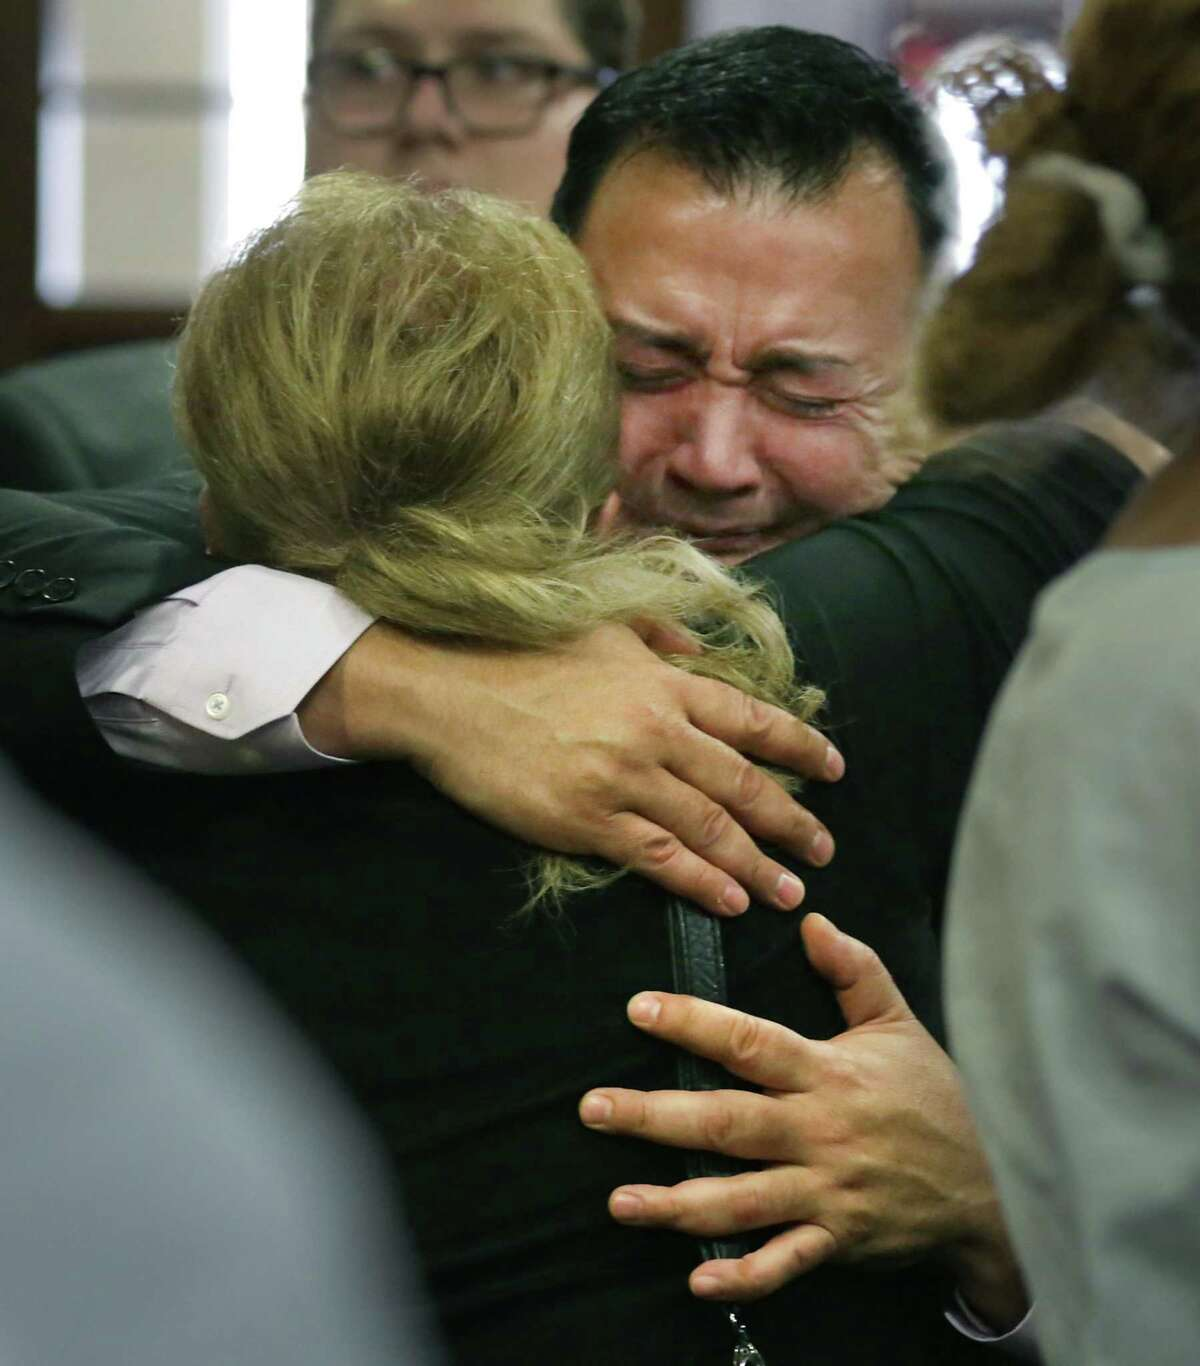 Gene Vargas, father of Jared Vargas, is embraced by neighbor Yolanda Martinez following the guilty verdict Tuesday against Ernesto Esquivel-Garcia, who killed the younger Vargas last year.